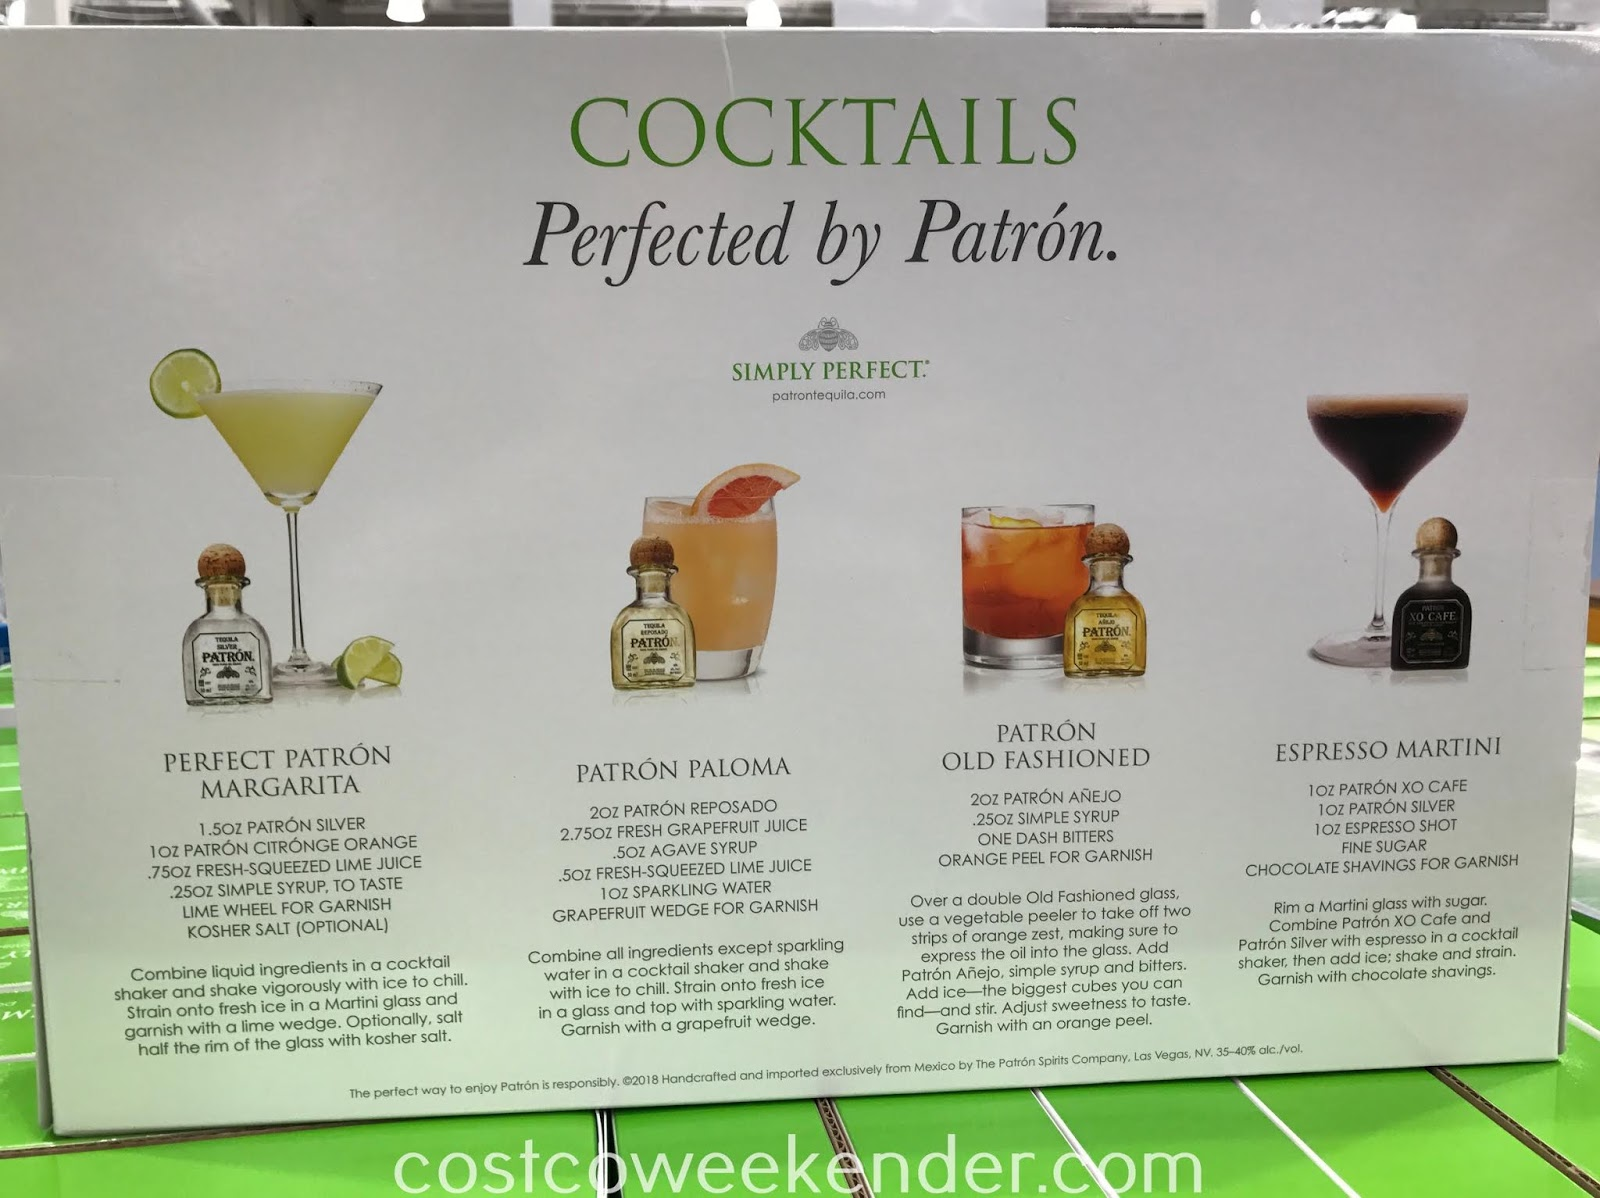 Costco 1196518 - Patron Tequila Limited Edition Gift Pack features 4 flavors of tequila